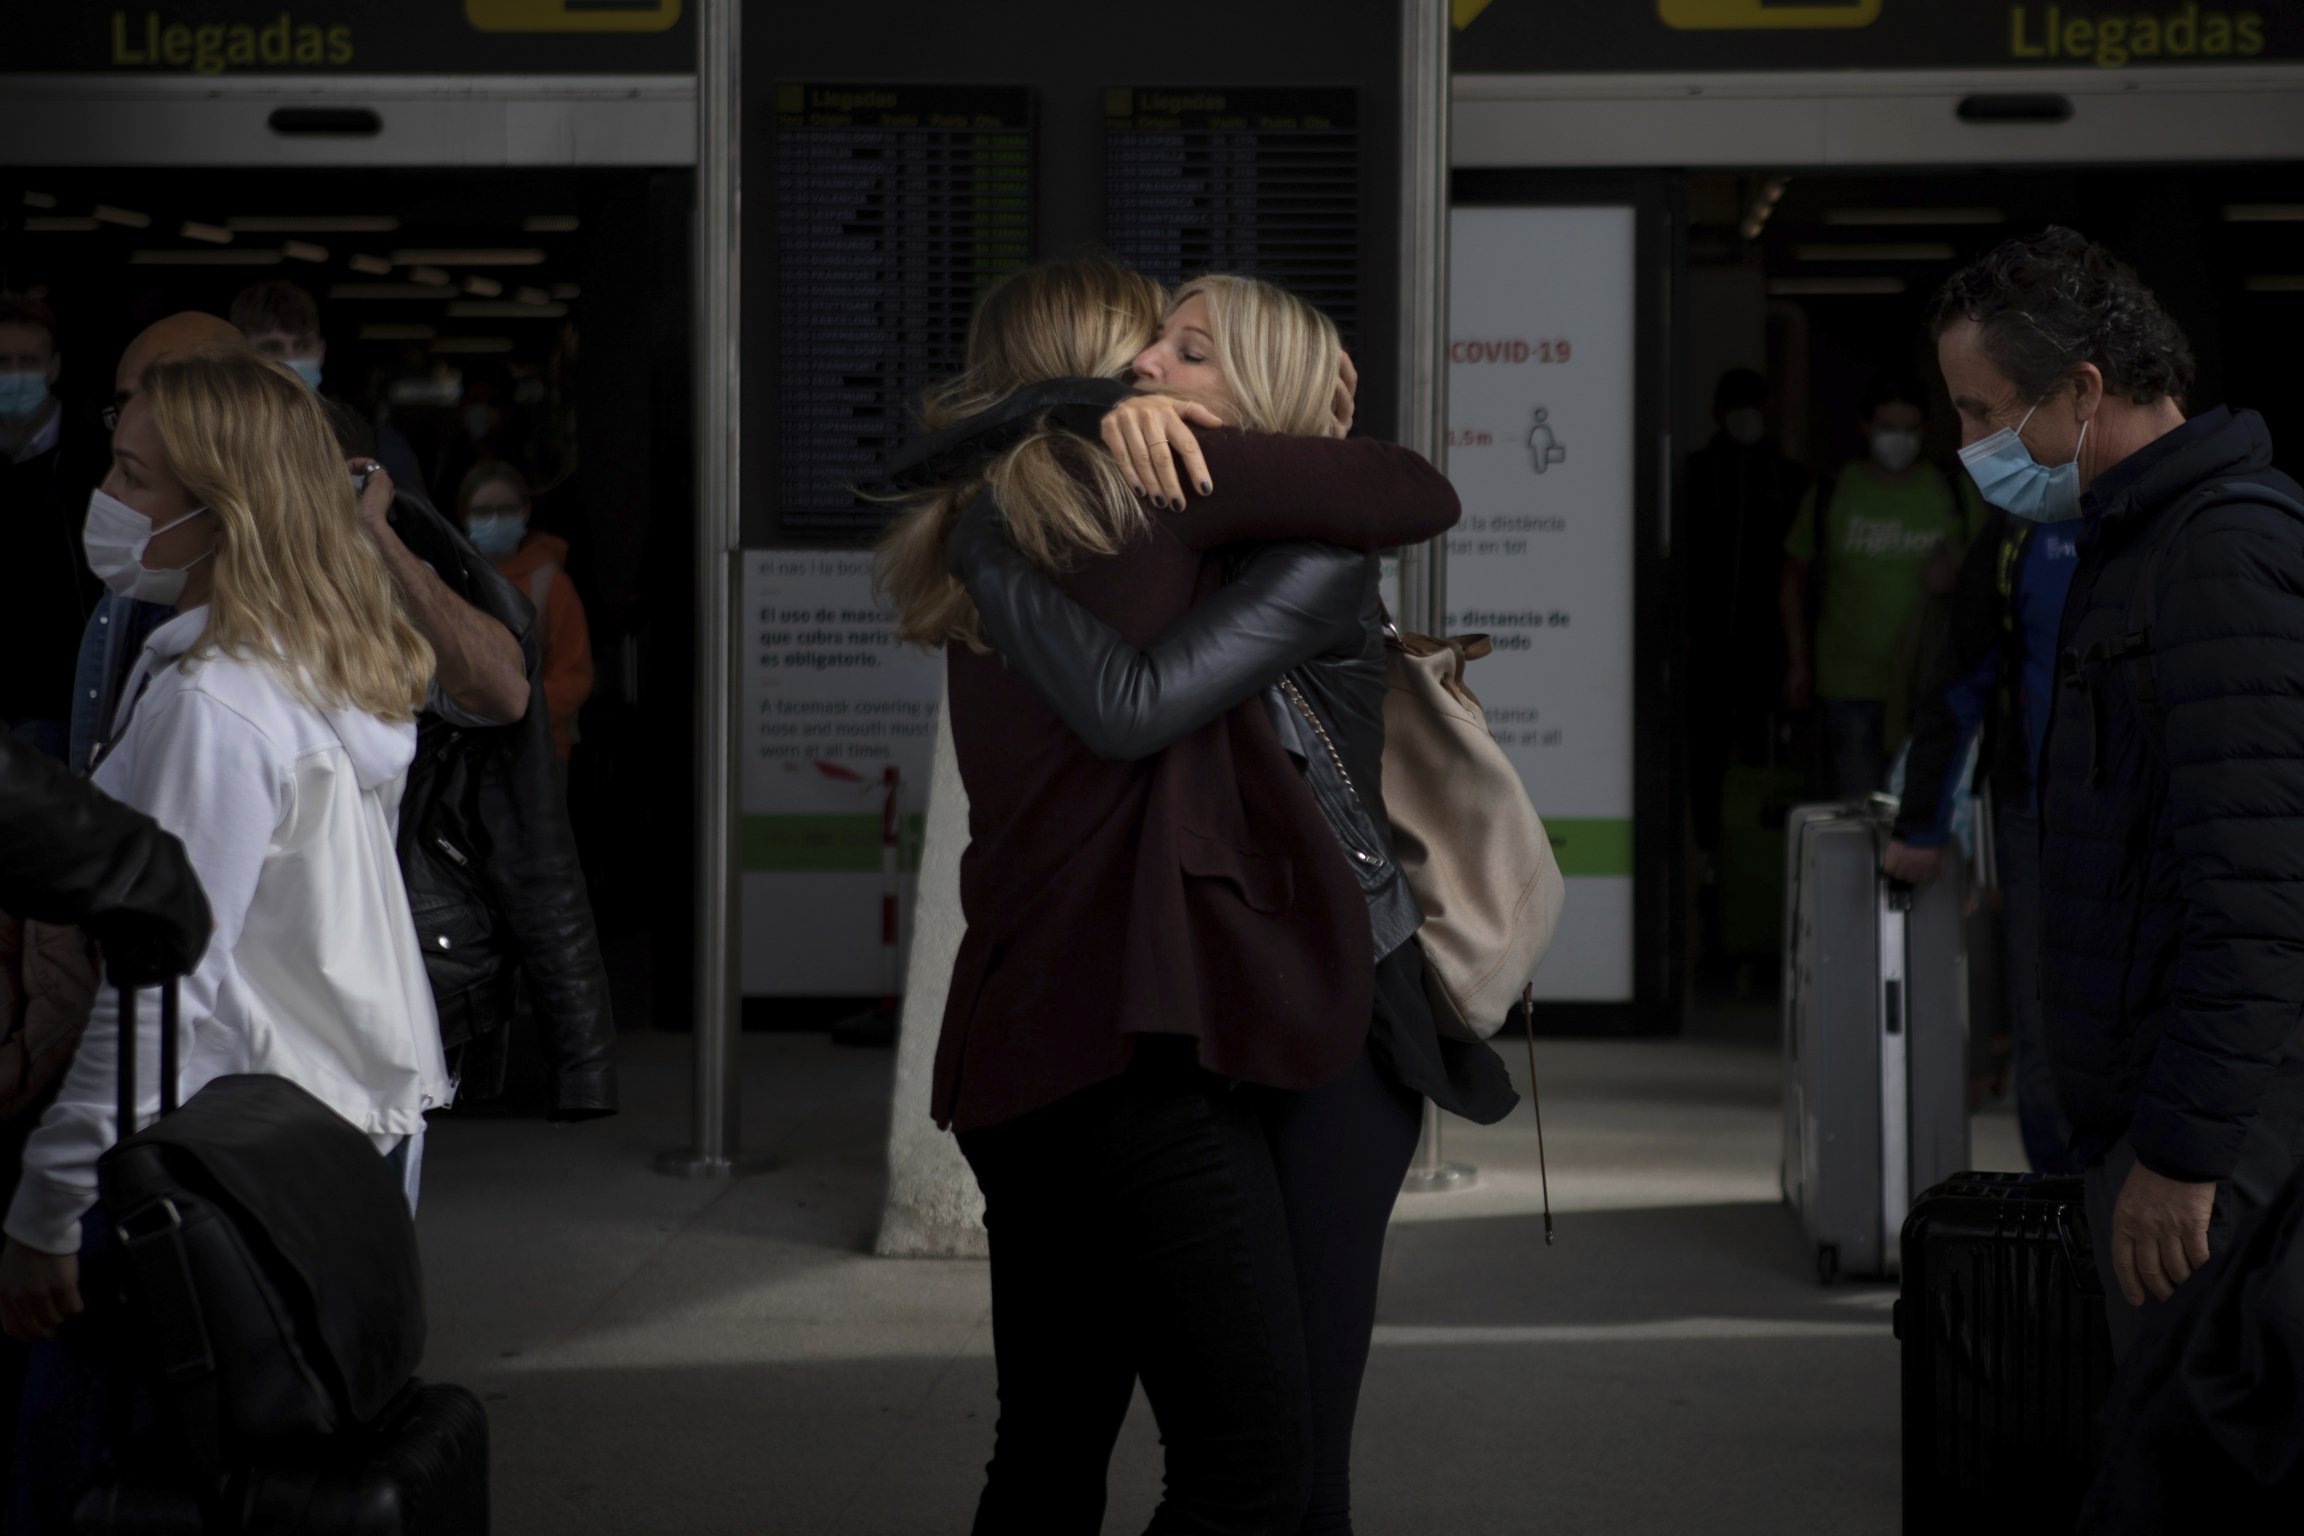 Two women in black clothing embrace in an airport